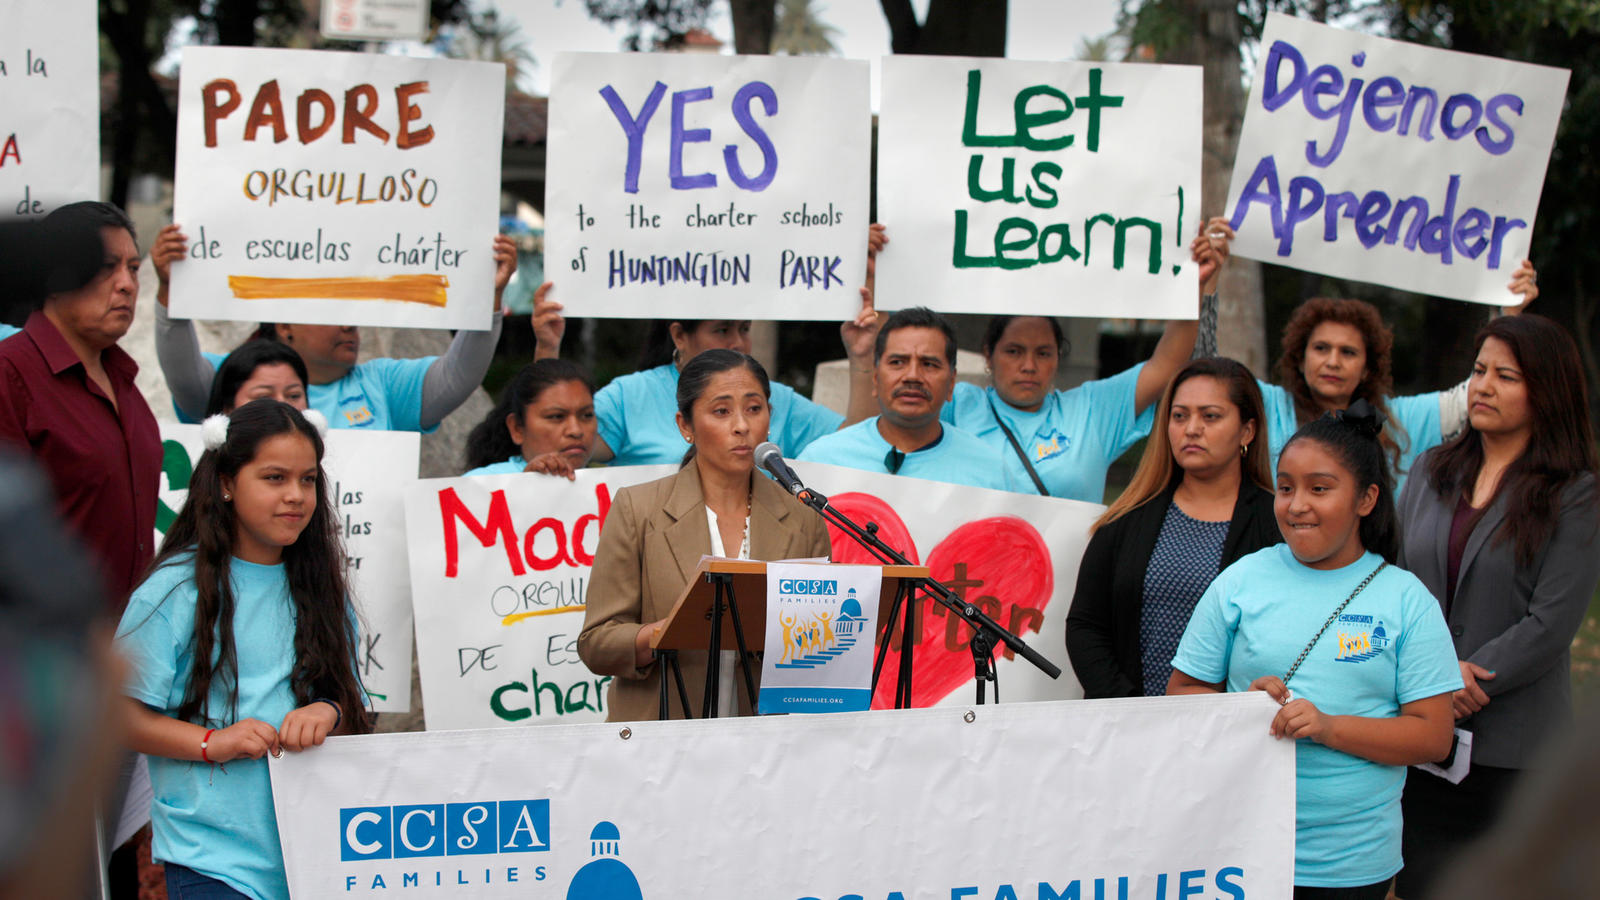 Charter school supporters participate in a rally in front of Huntington Park City Hall. (Allen J. Schaben / Los Angeles Times)